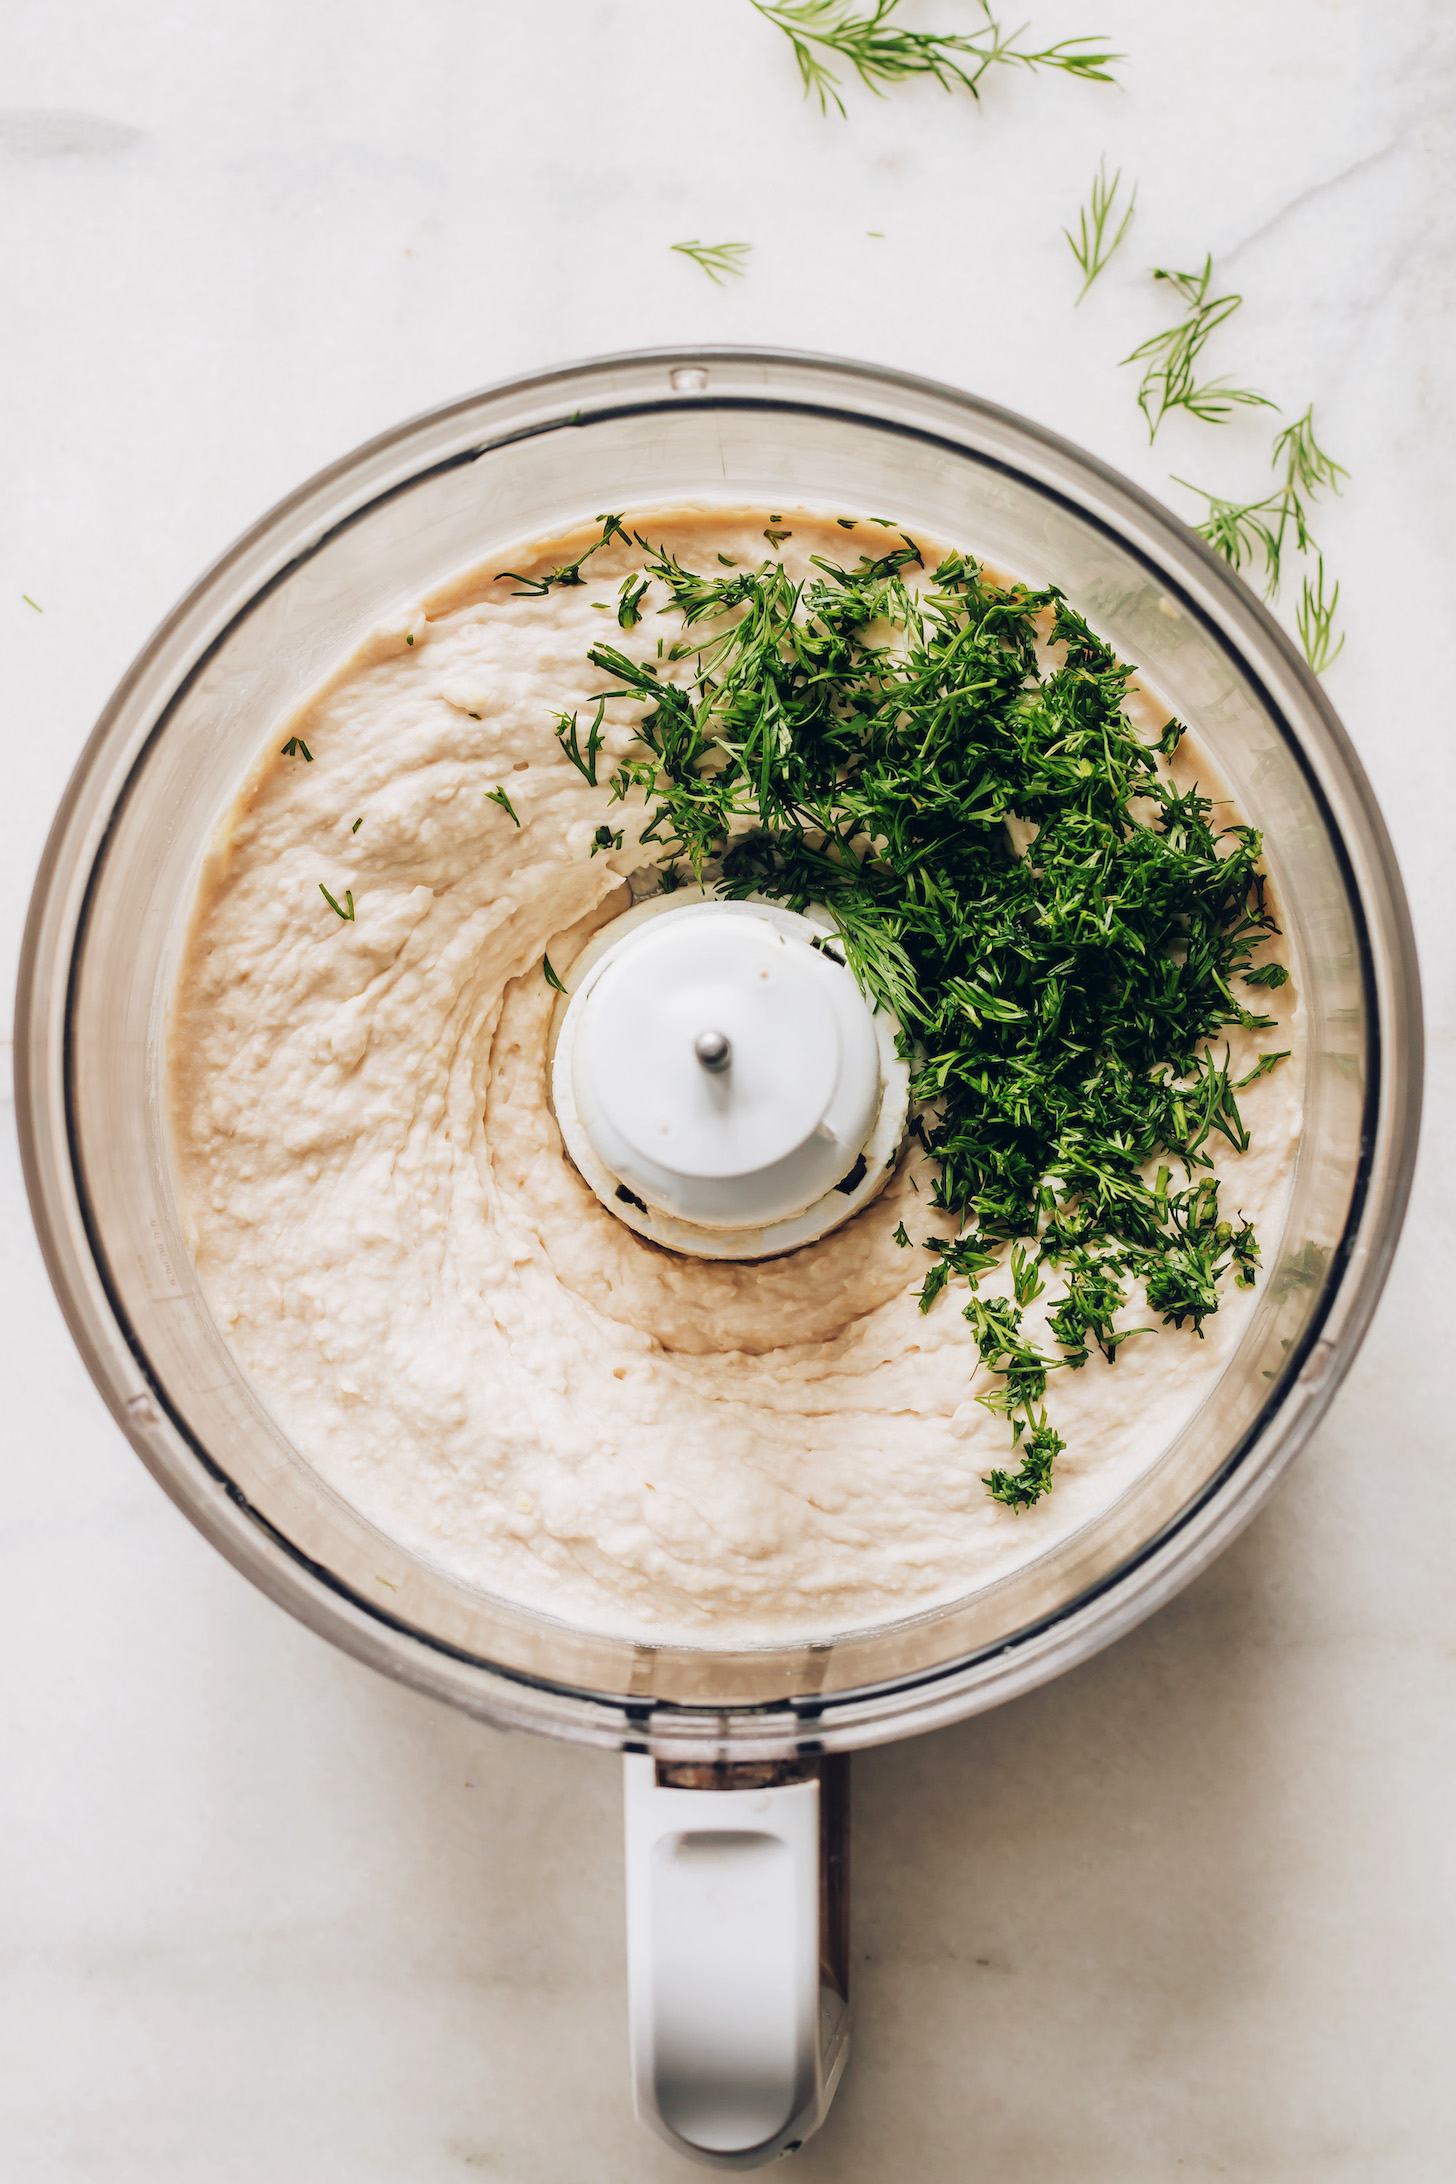 Food processor of white bean hummus topped with fresh dill